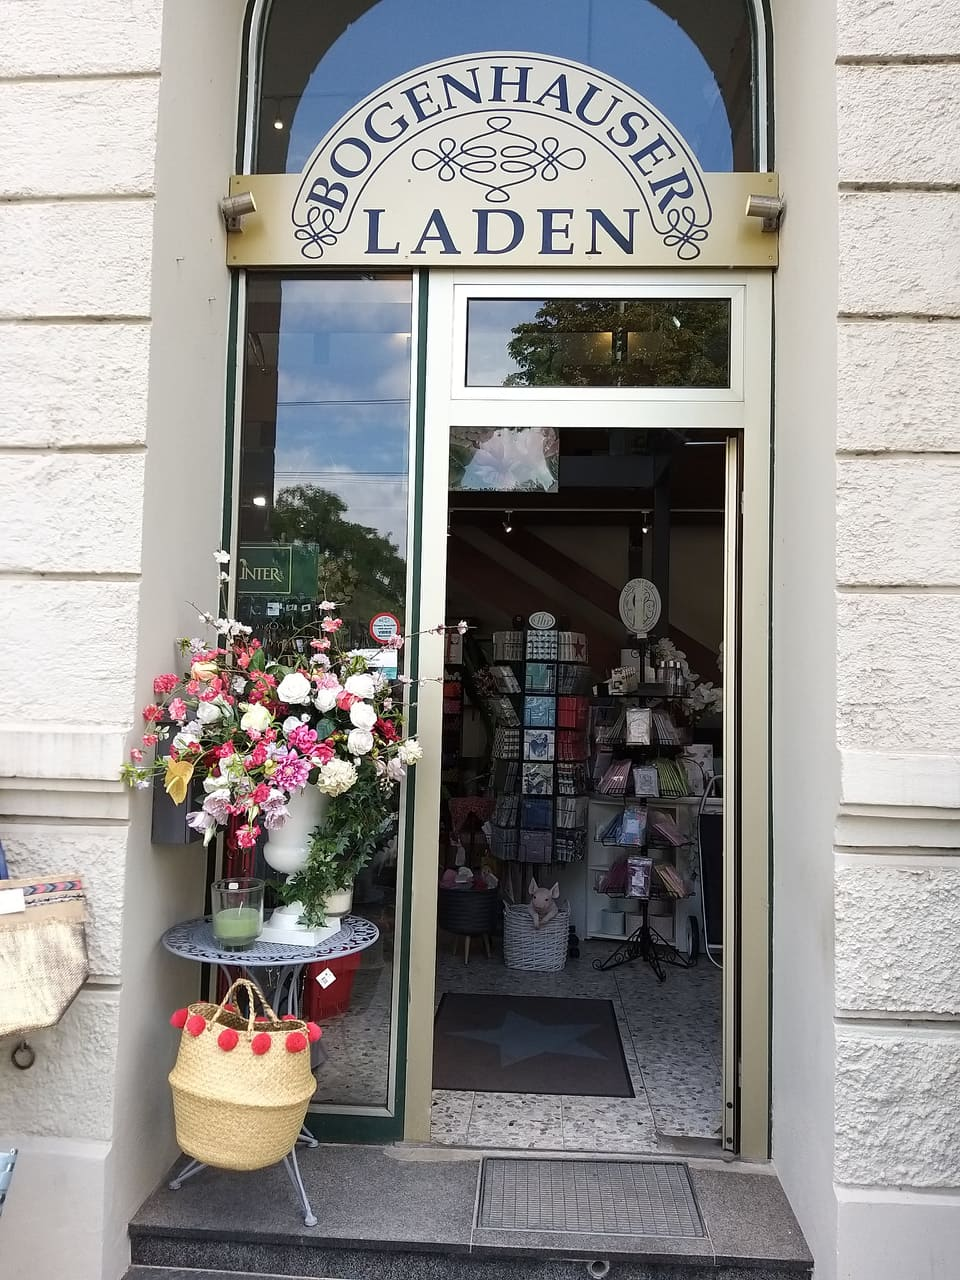 Bogenhause Laden